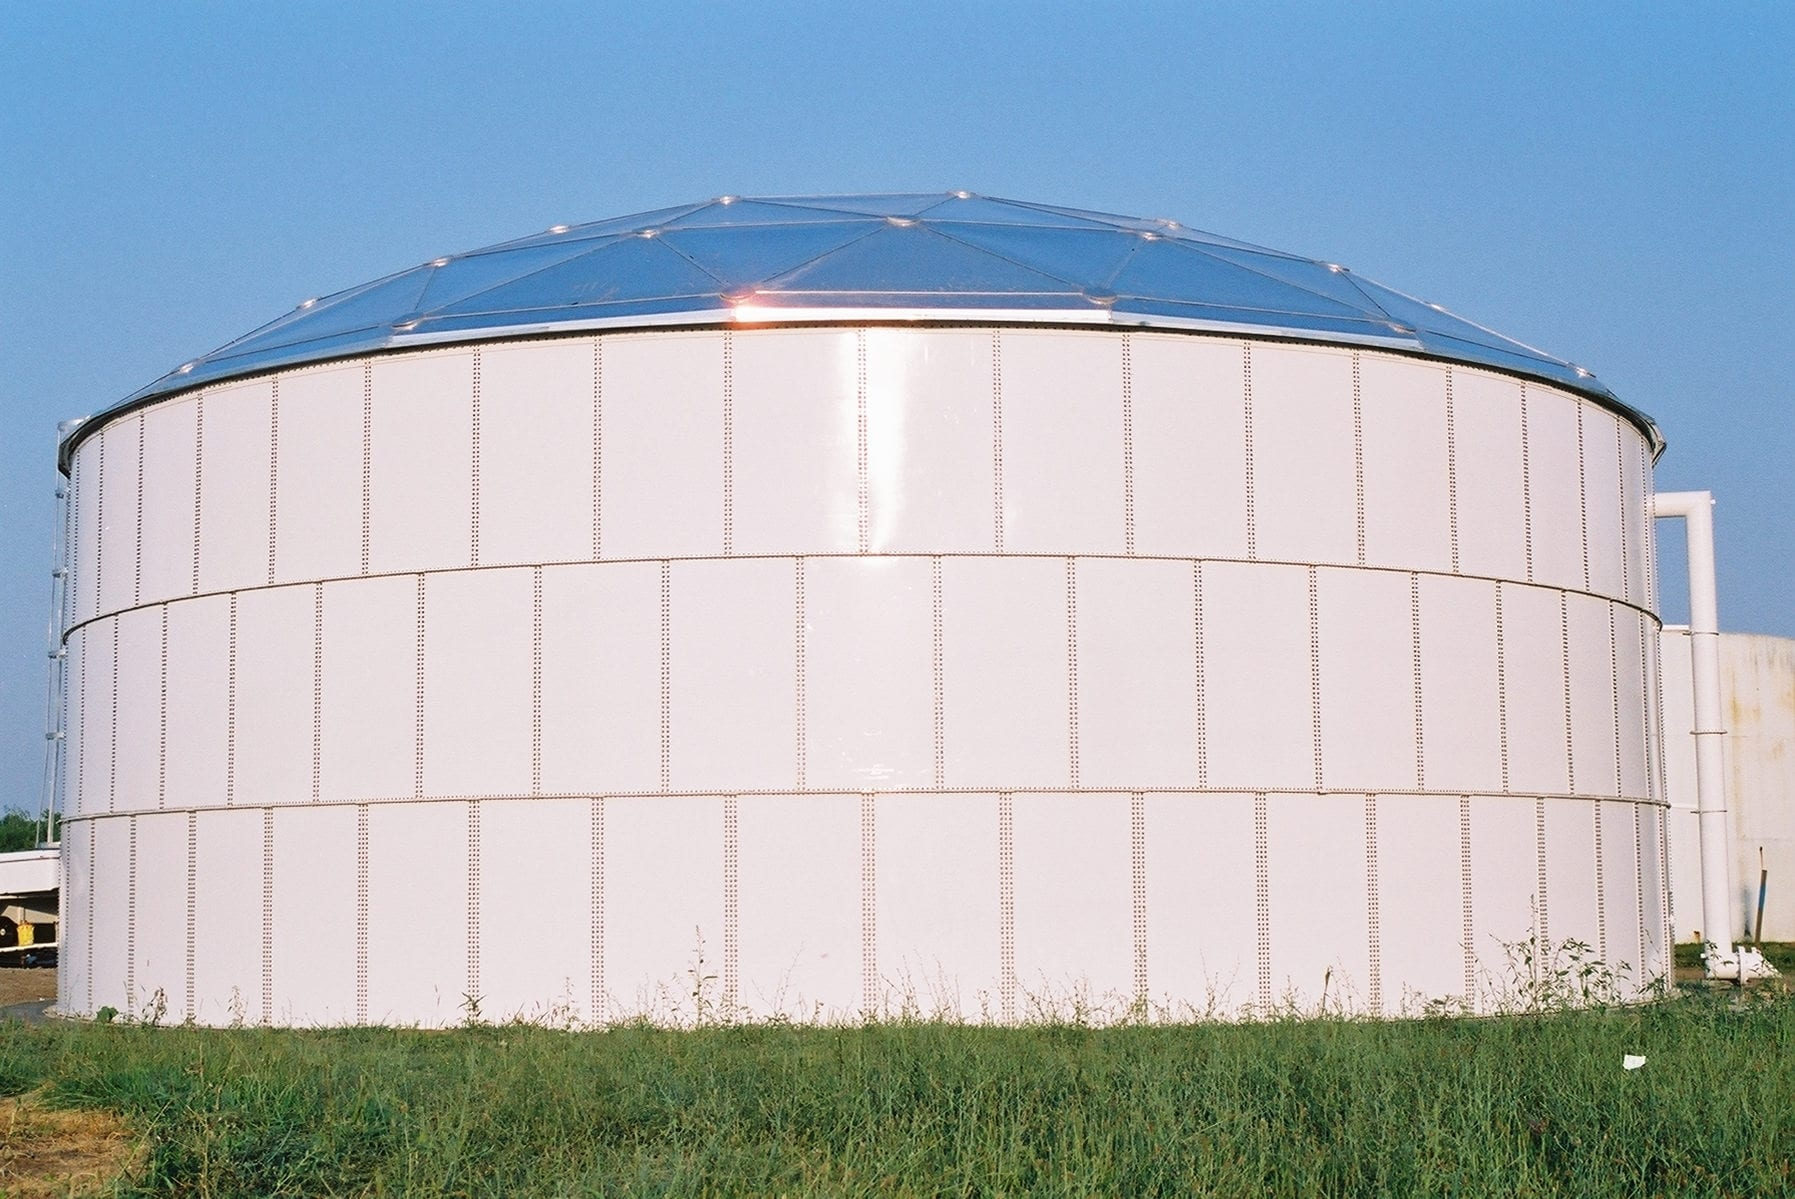 Tectank Epoxy Coated Liquid Storage Tanks Manufacturer